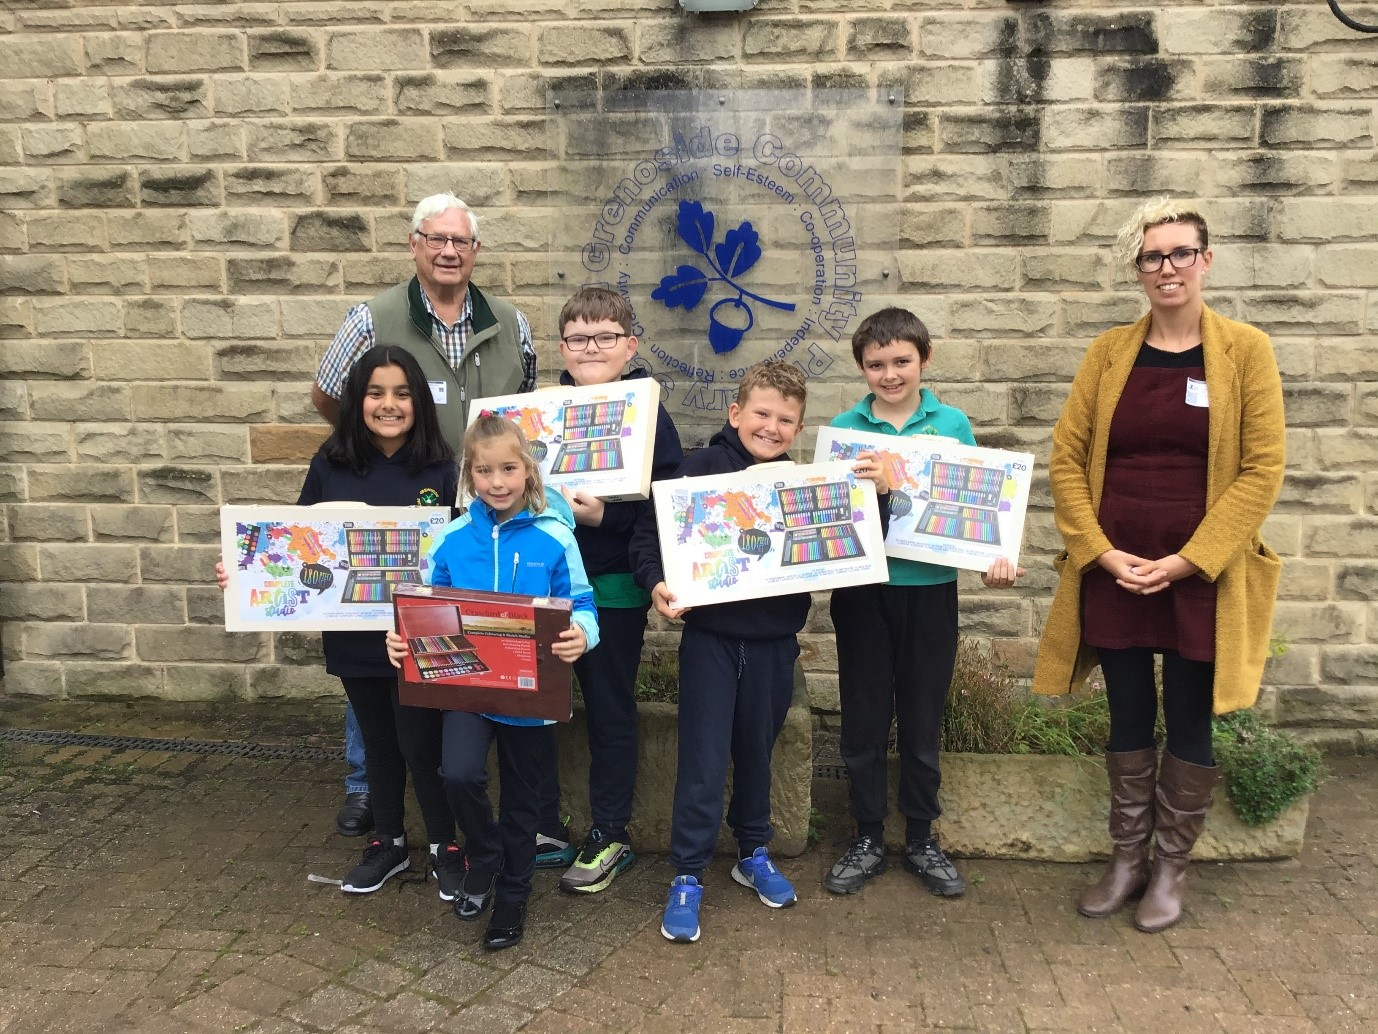 Congratulations to the Covid Monument artists